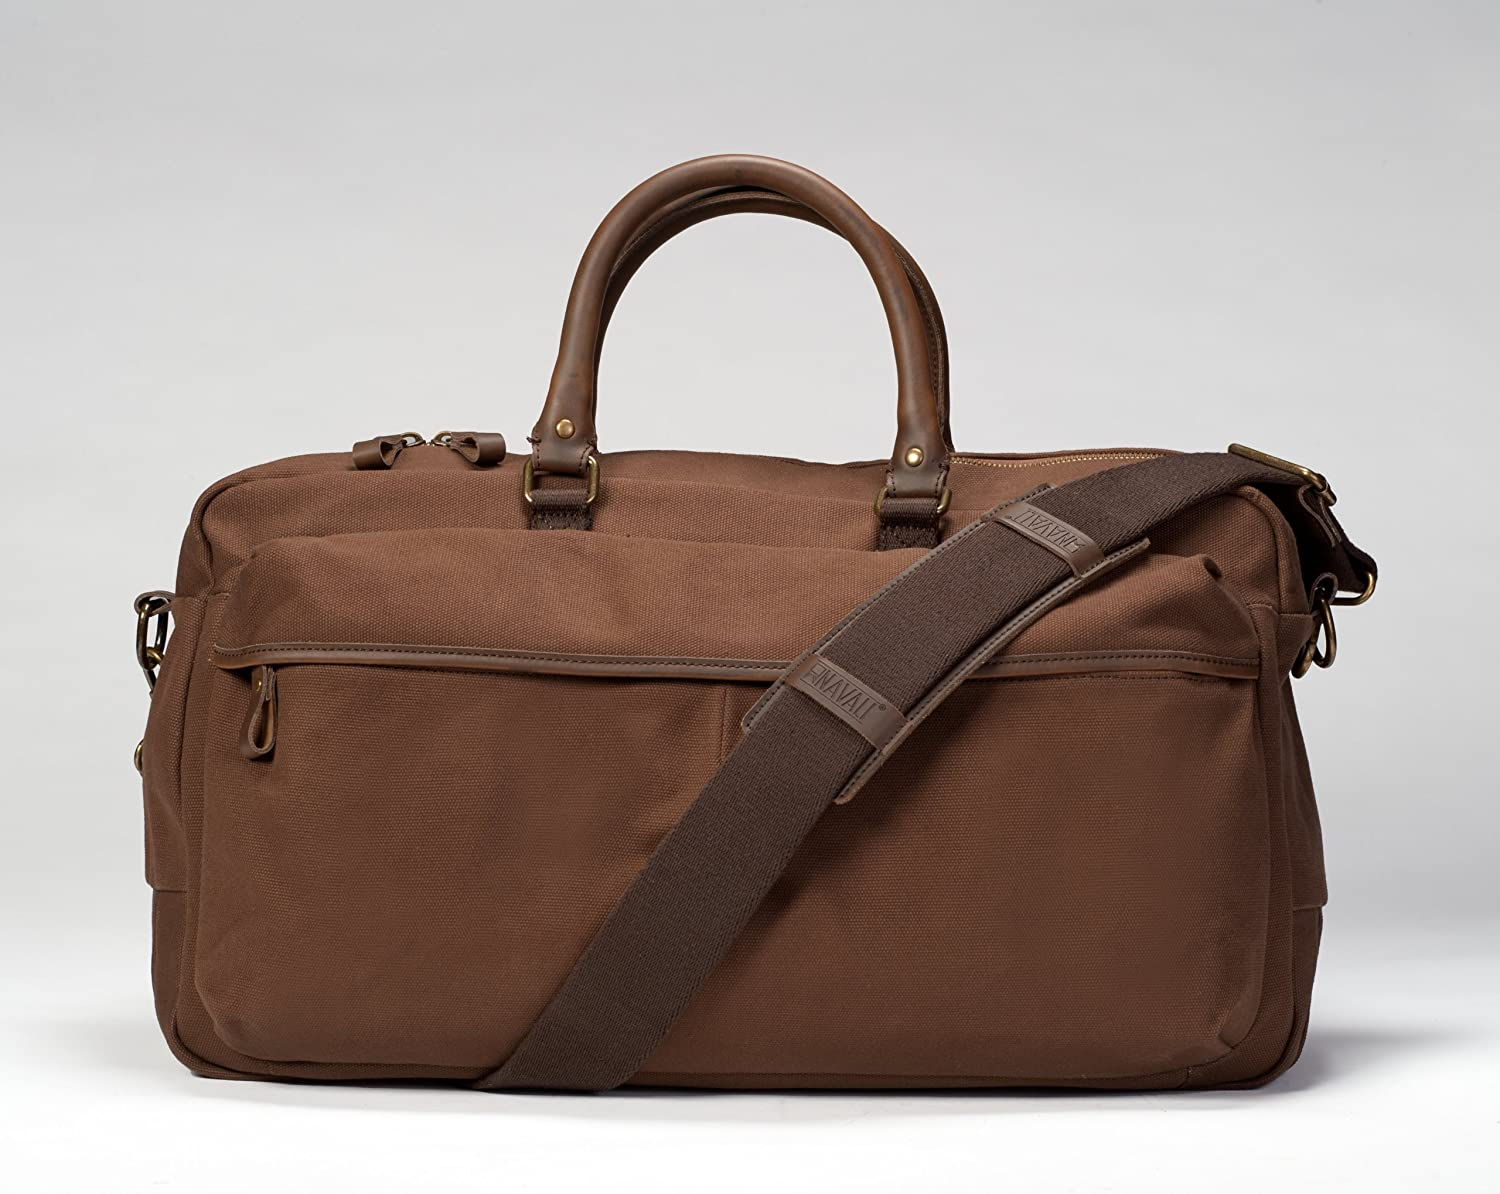 Navali Stowaway Canvas and Leather Weekender Bag, Carafe